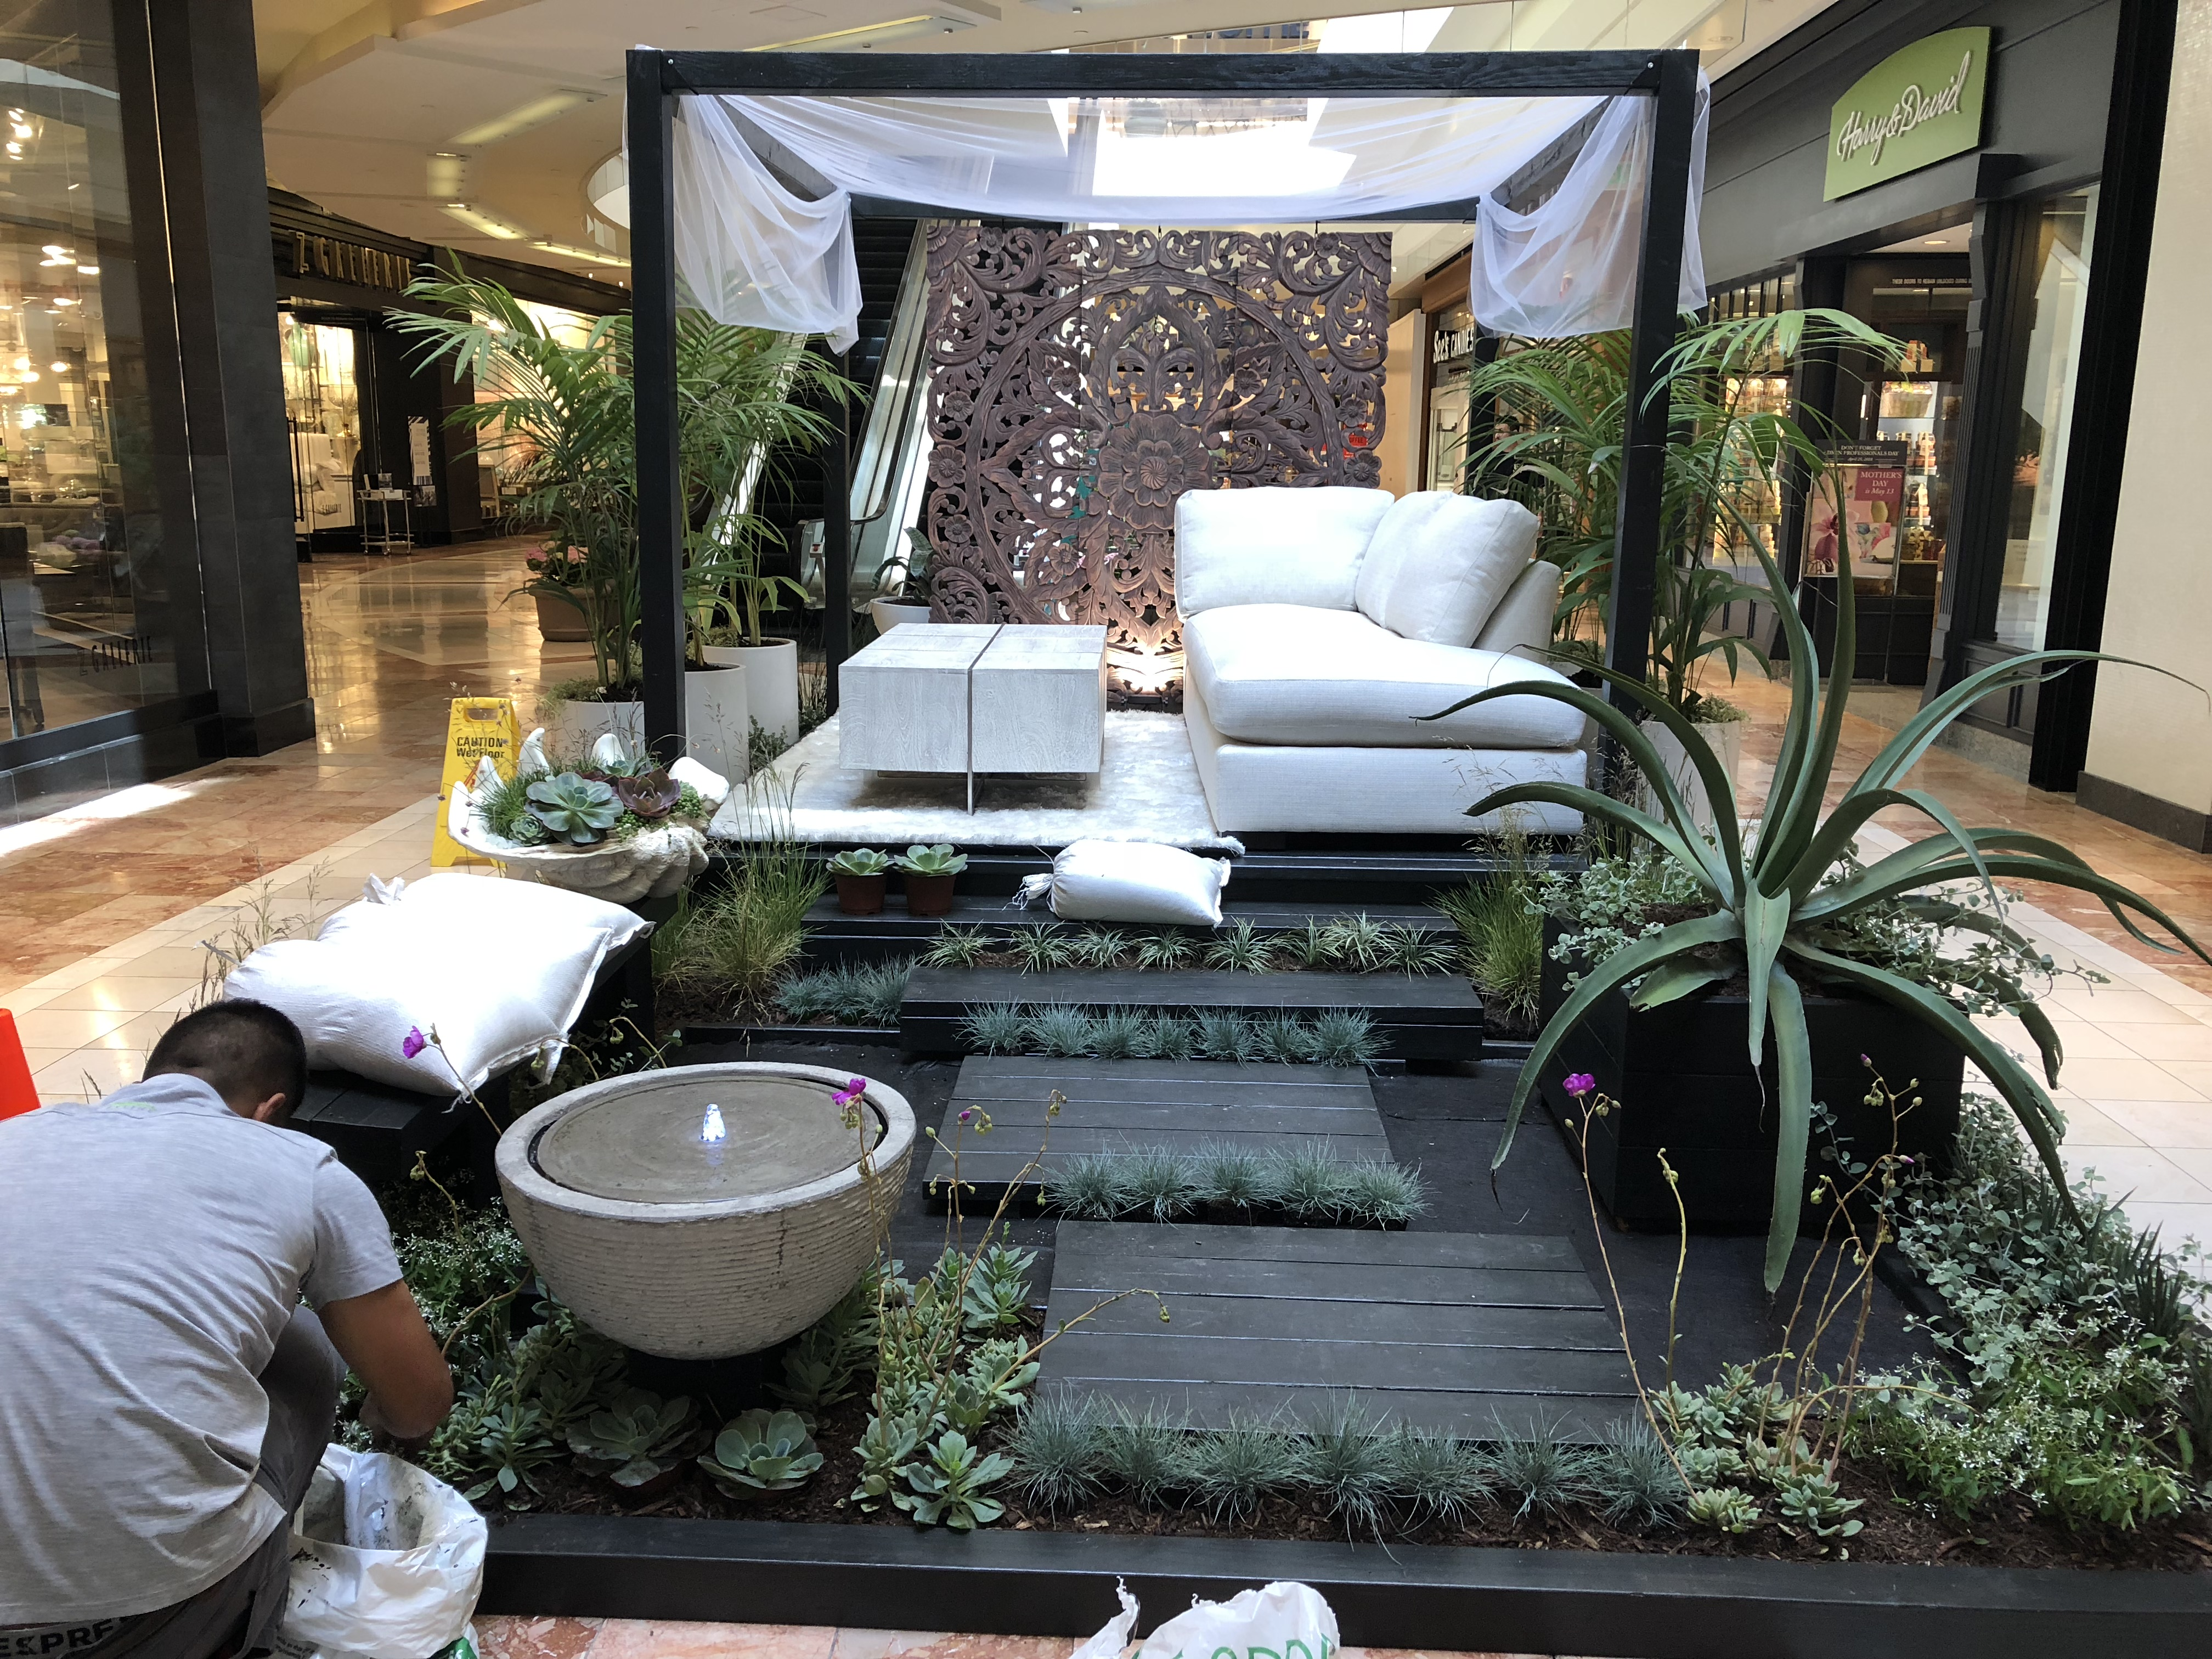 SOUTH COAST PLAZA - GARDEN SHOW 2018